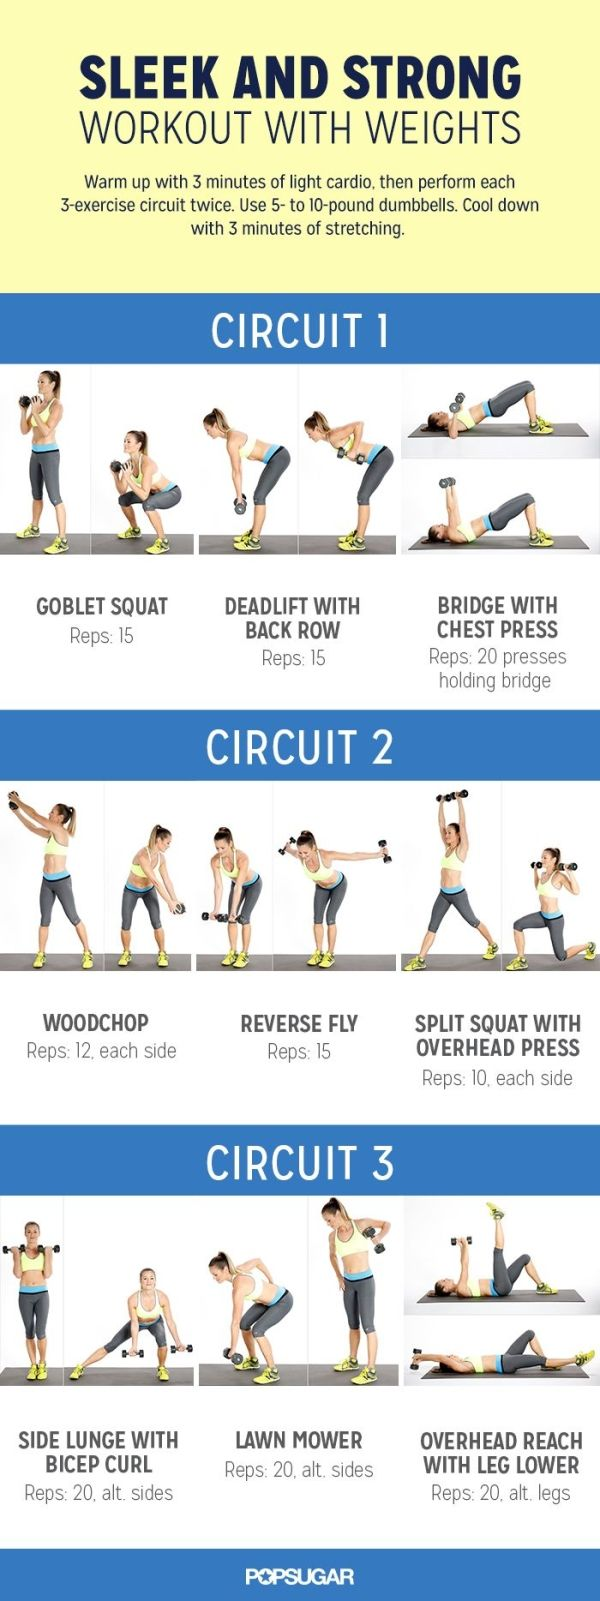 Workout With Weights: Toned Body Workout, Body Weight Workout, Arm Workout With Weight, Full Body Hiit Workout, Work Out, Fitness Workout, Circuit Training Workout, Circuit Workout With Weight